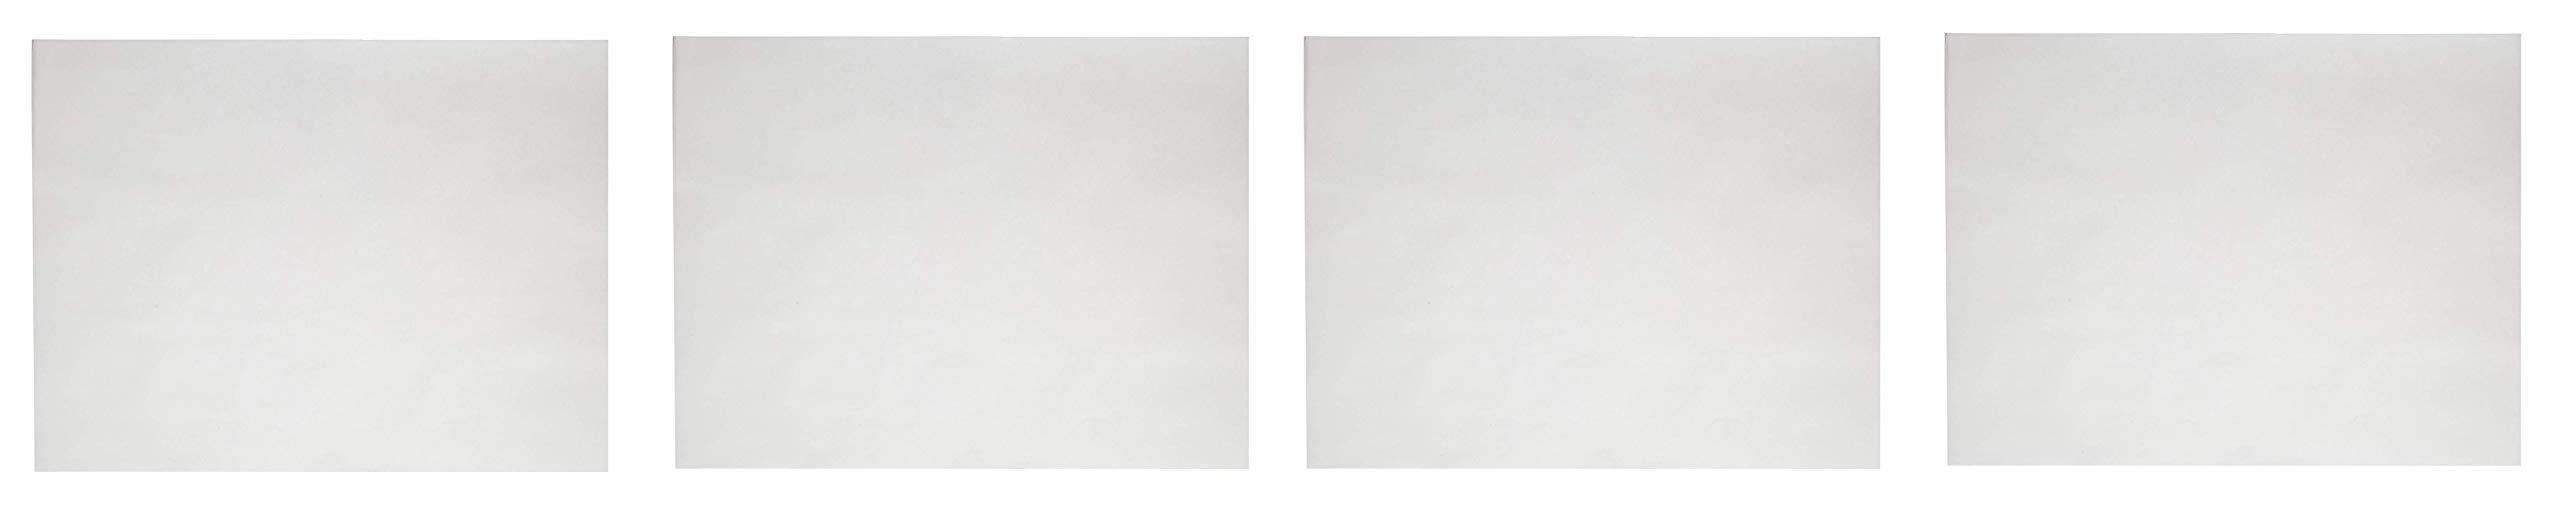 Sax Sulphite Drawing Paper, 70 lb, 18 x 24 Inches, Extra-White, Pack of 500 (4-Pack) by Sax